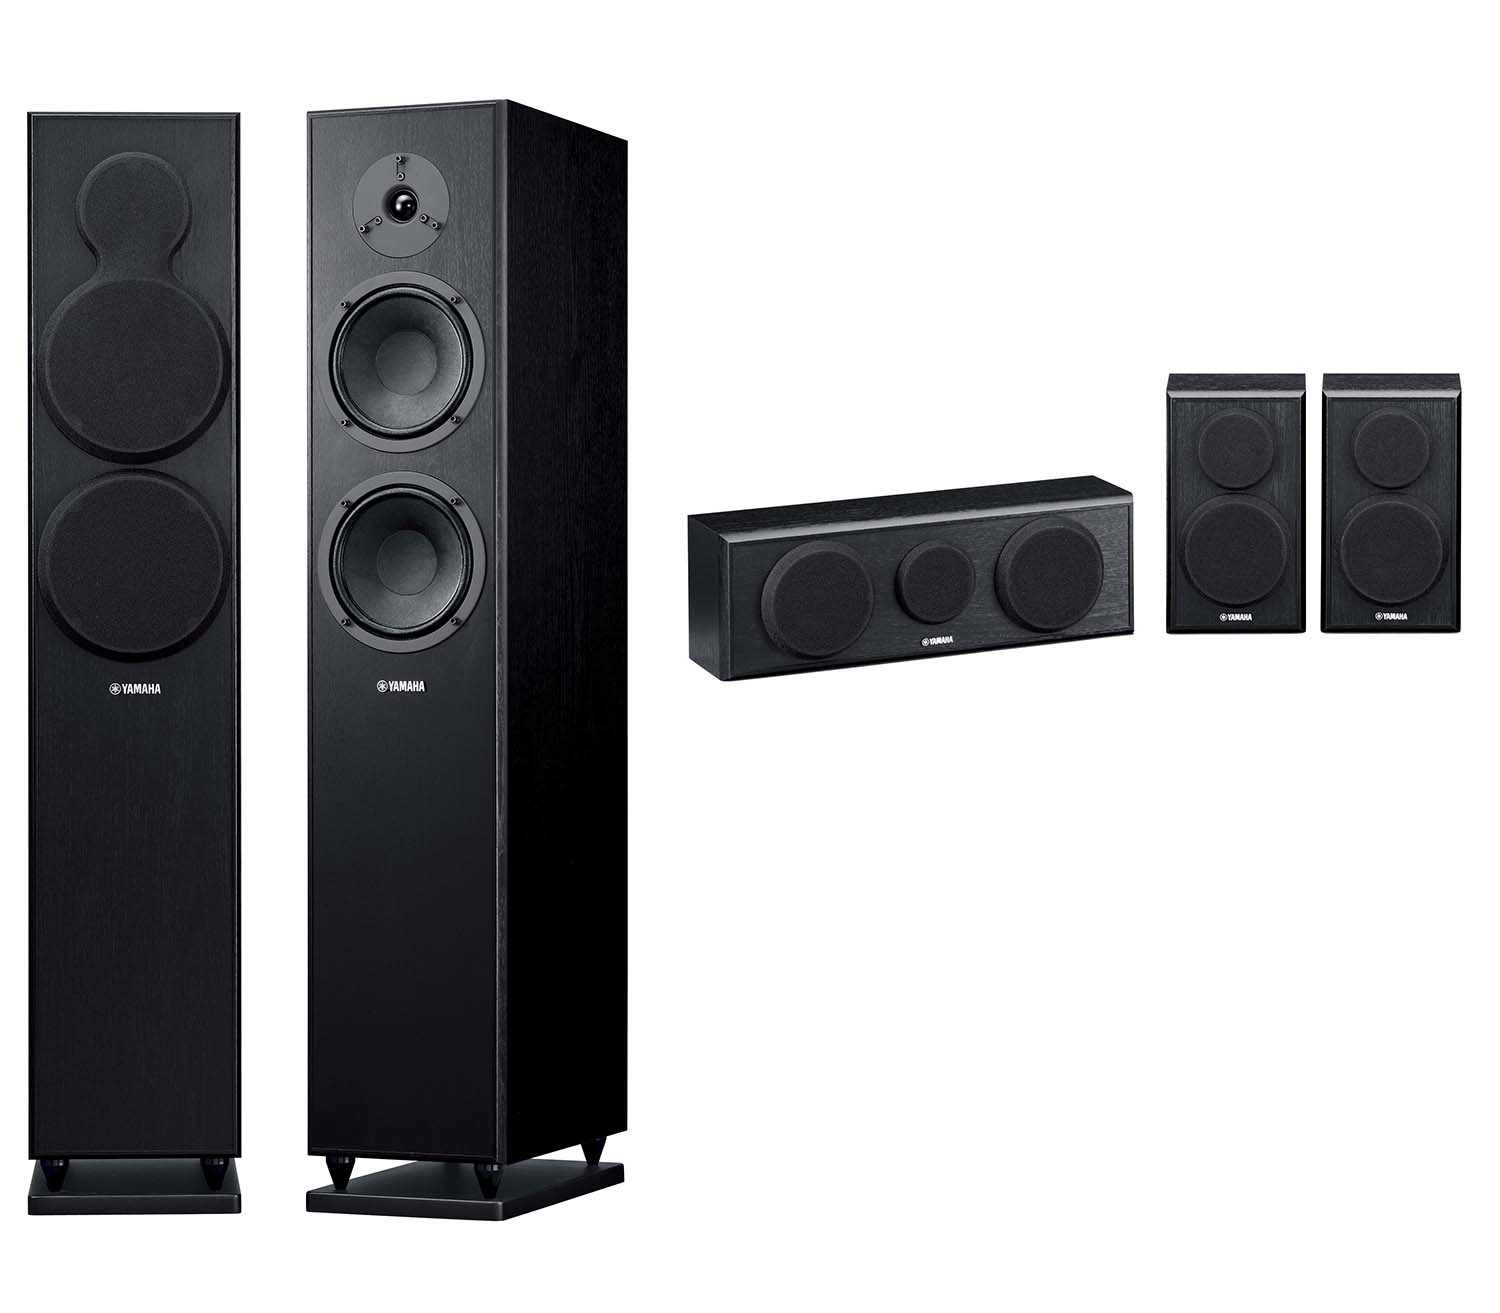 Yamaha ns 150 pack av concept audio and visual for Yamaha ns 50 speaker pack